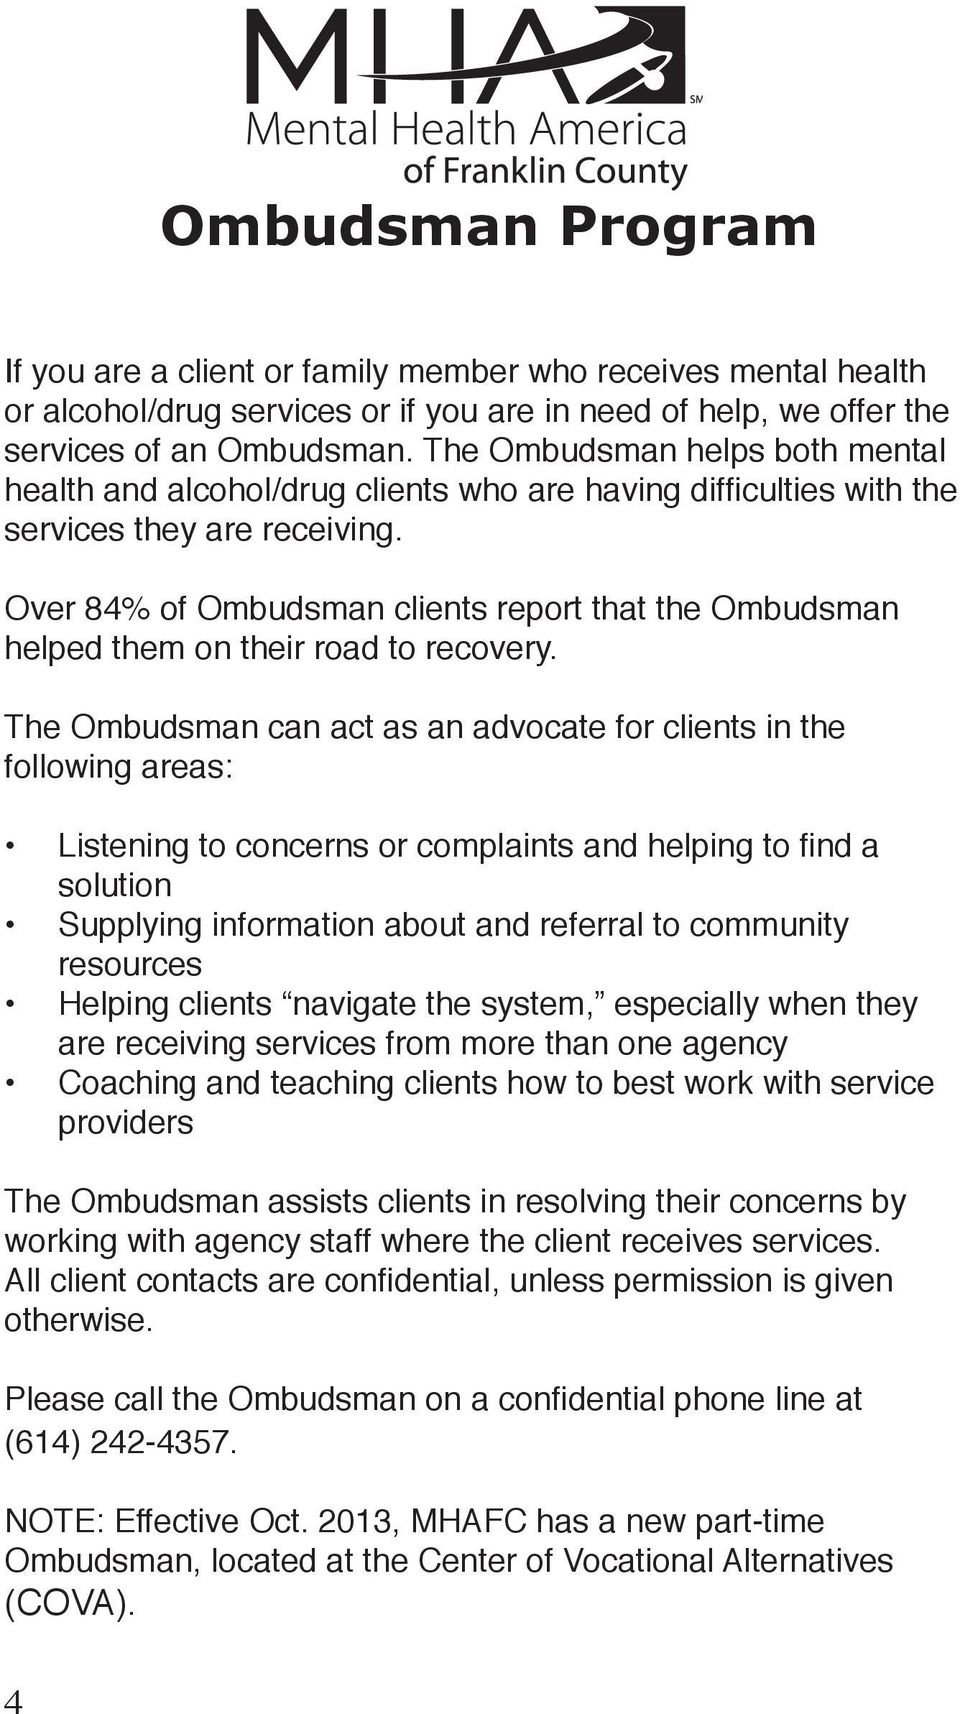 The Ombudsman can act as an advocate for clients in the following areas: solution Supplying information about and referral to community resources Helping clients navigate the system, especially when